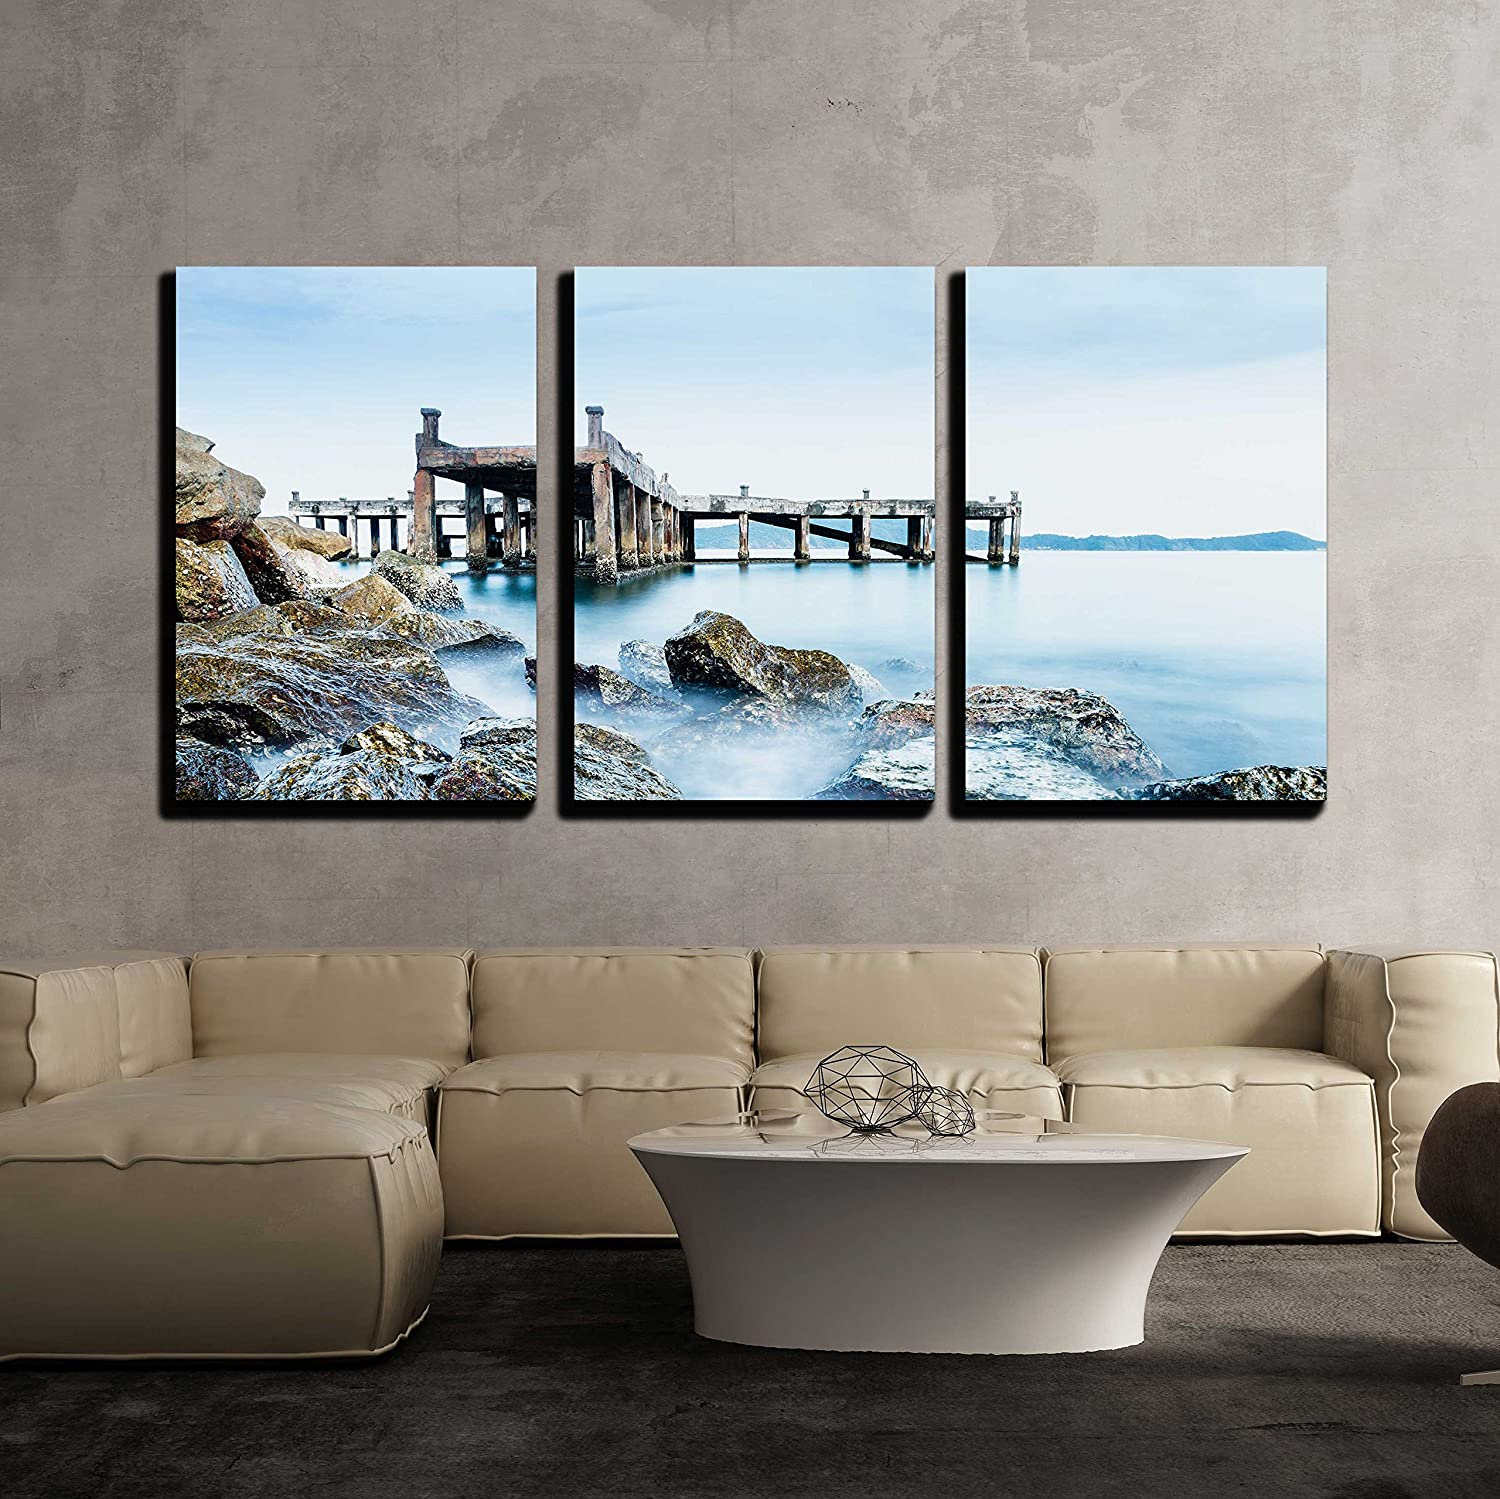 Wall26 3 Piece Canvas Wall Art Old Jetty And Rocks Modern Home Art Stretched And Framed Ready To Hang 24 X36 X3 Panels Posters Prints